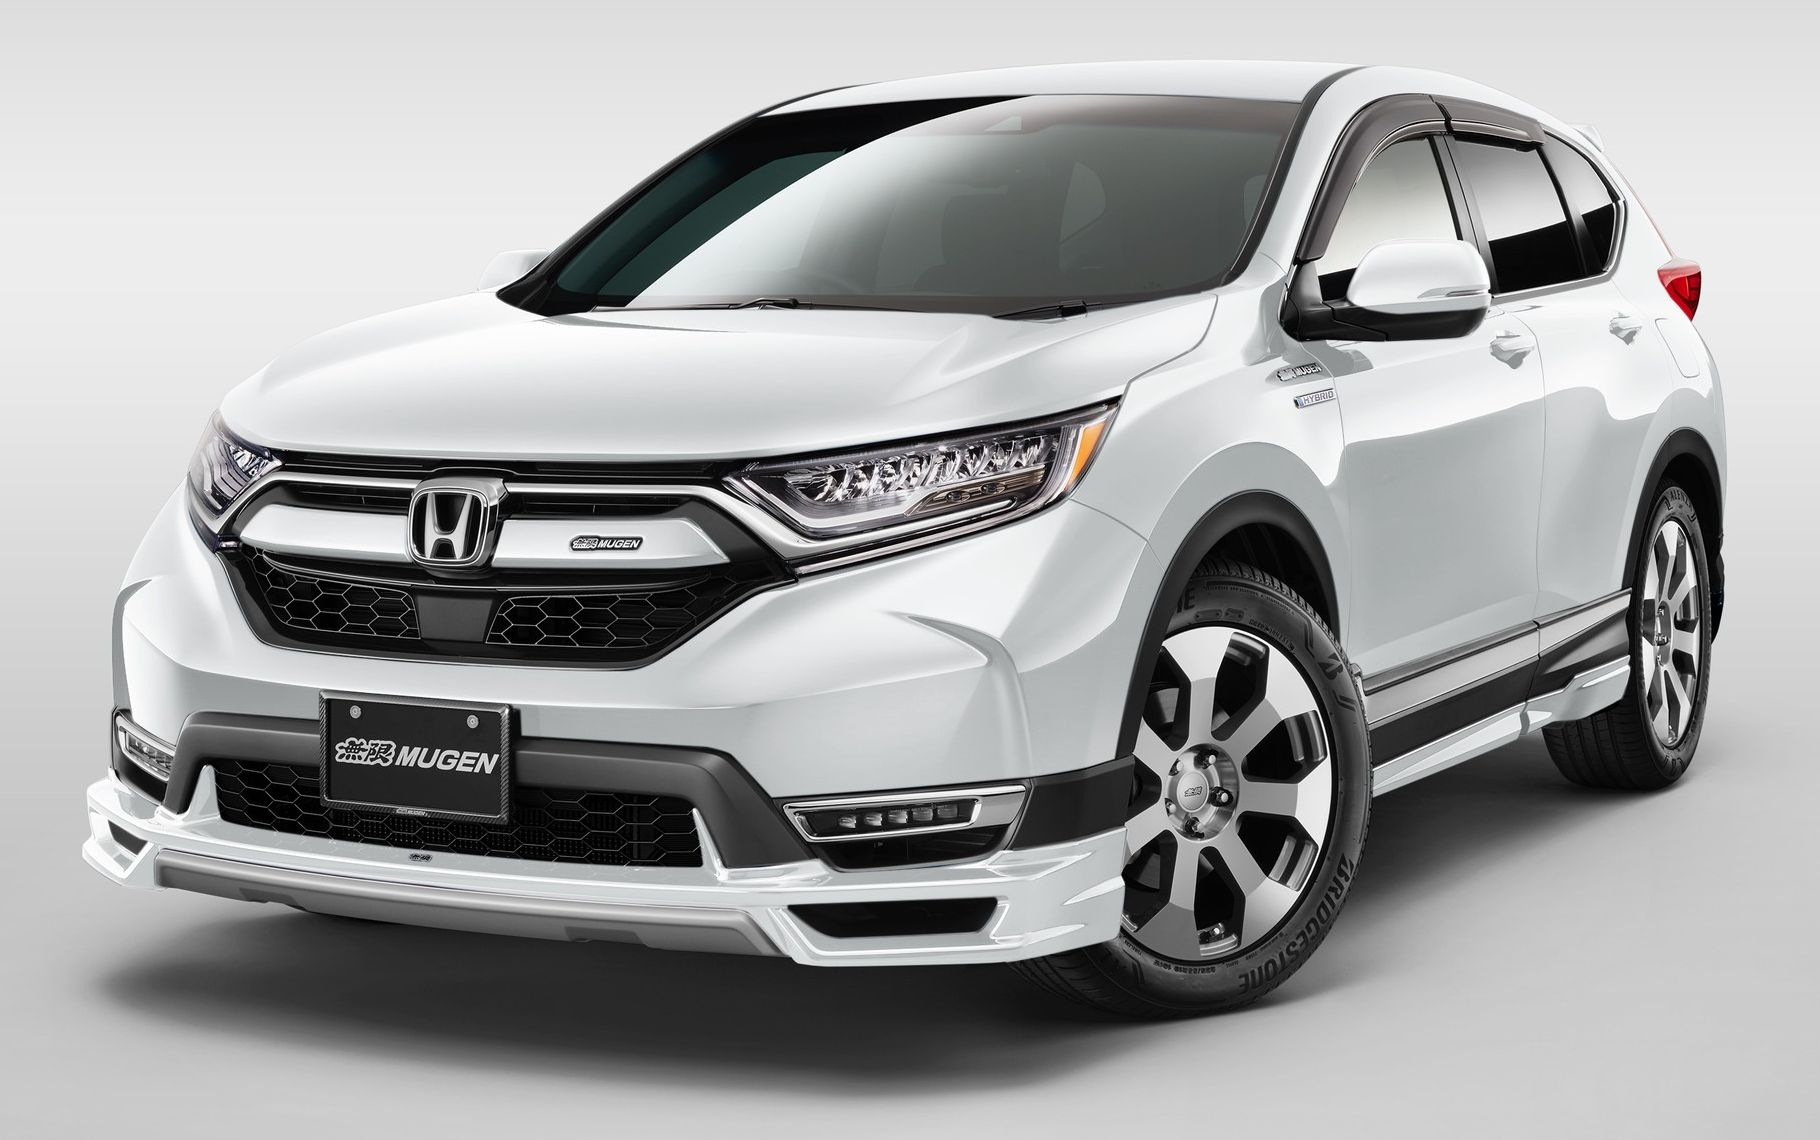 Mugen to showcase accessories for Honda CR-V, Insight and ...